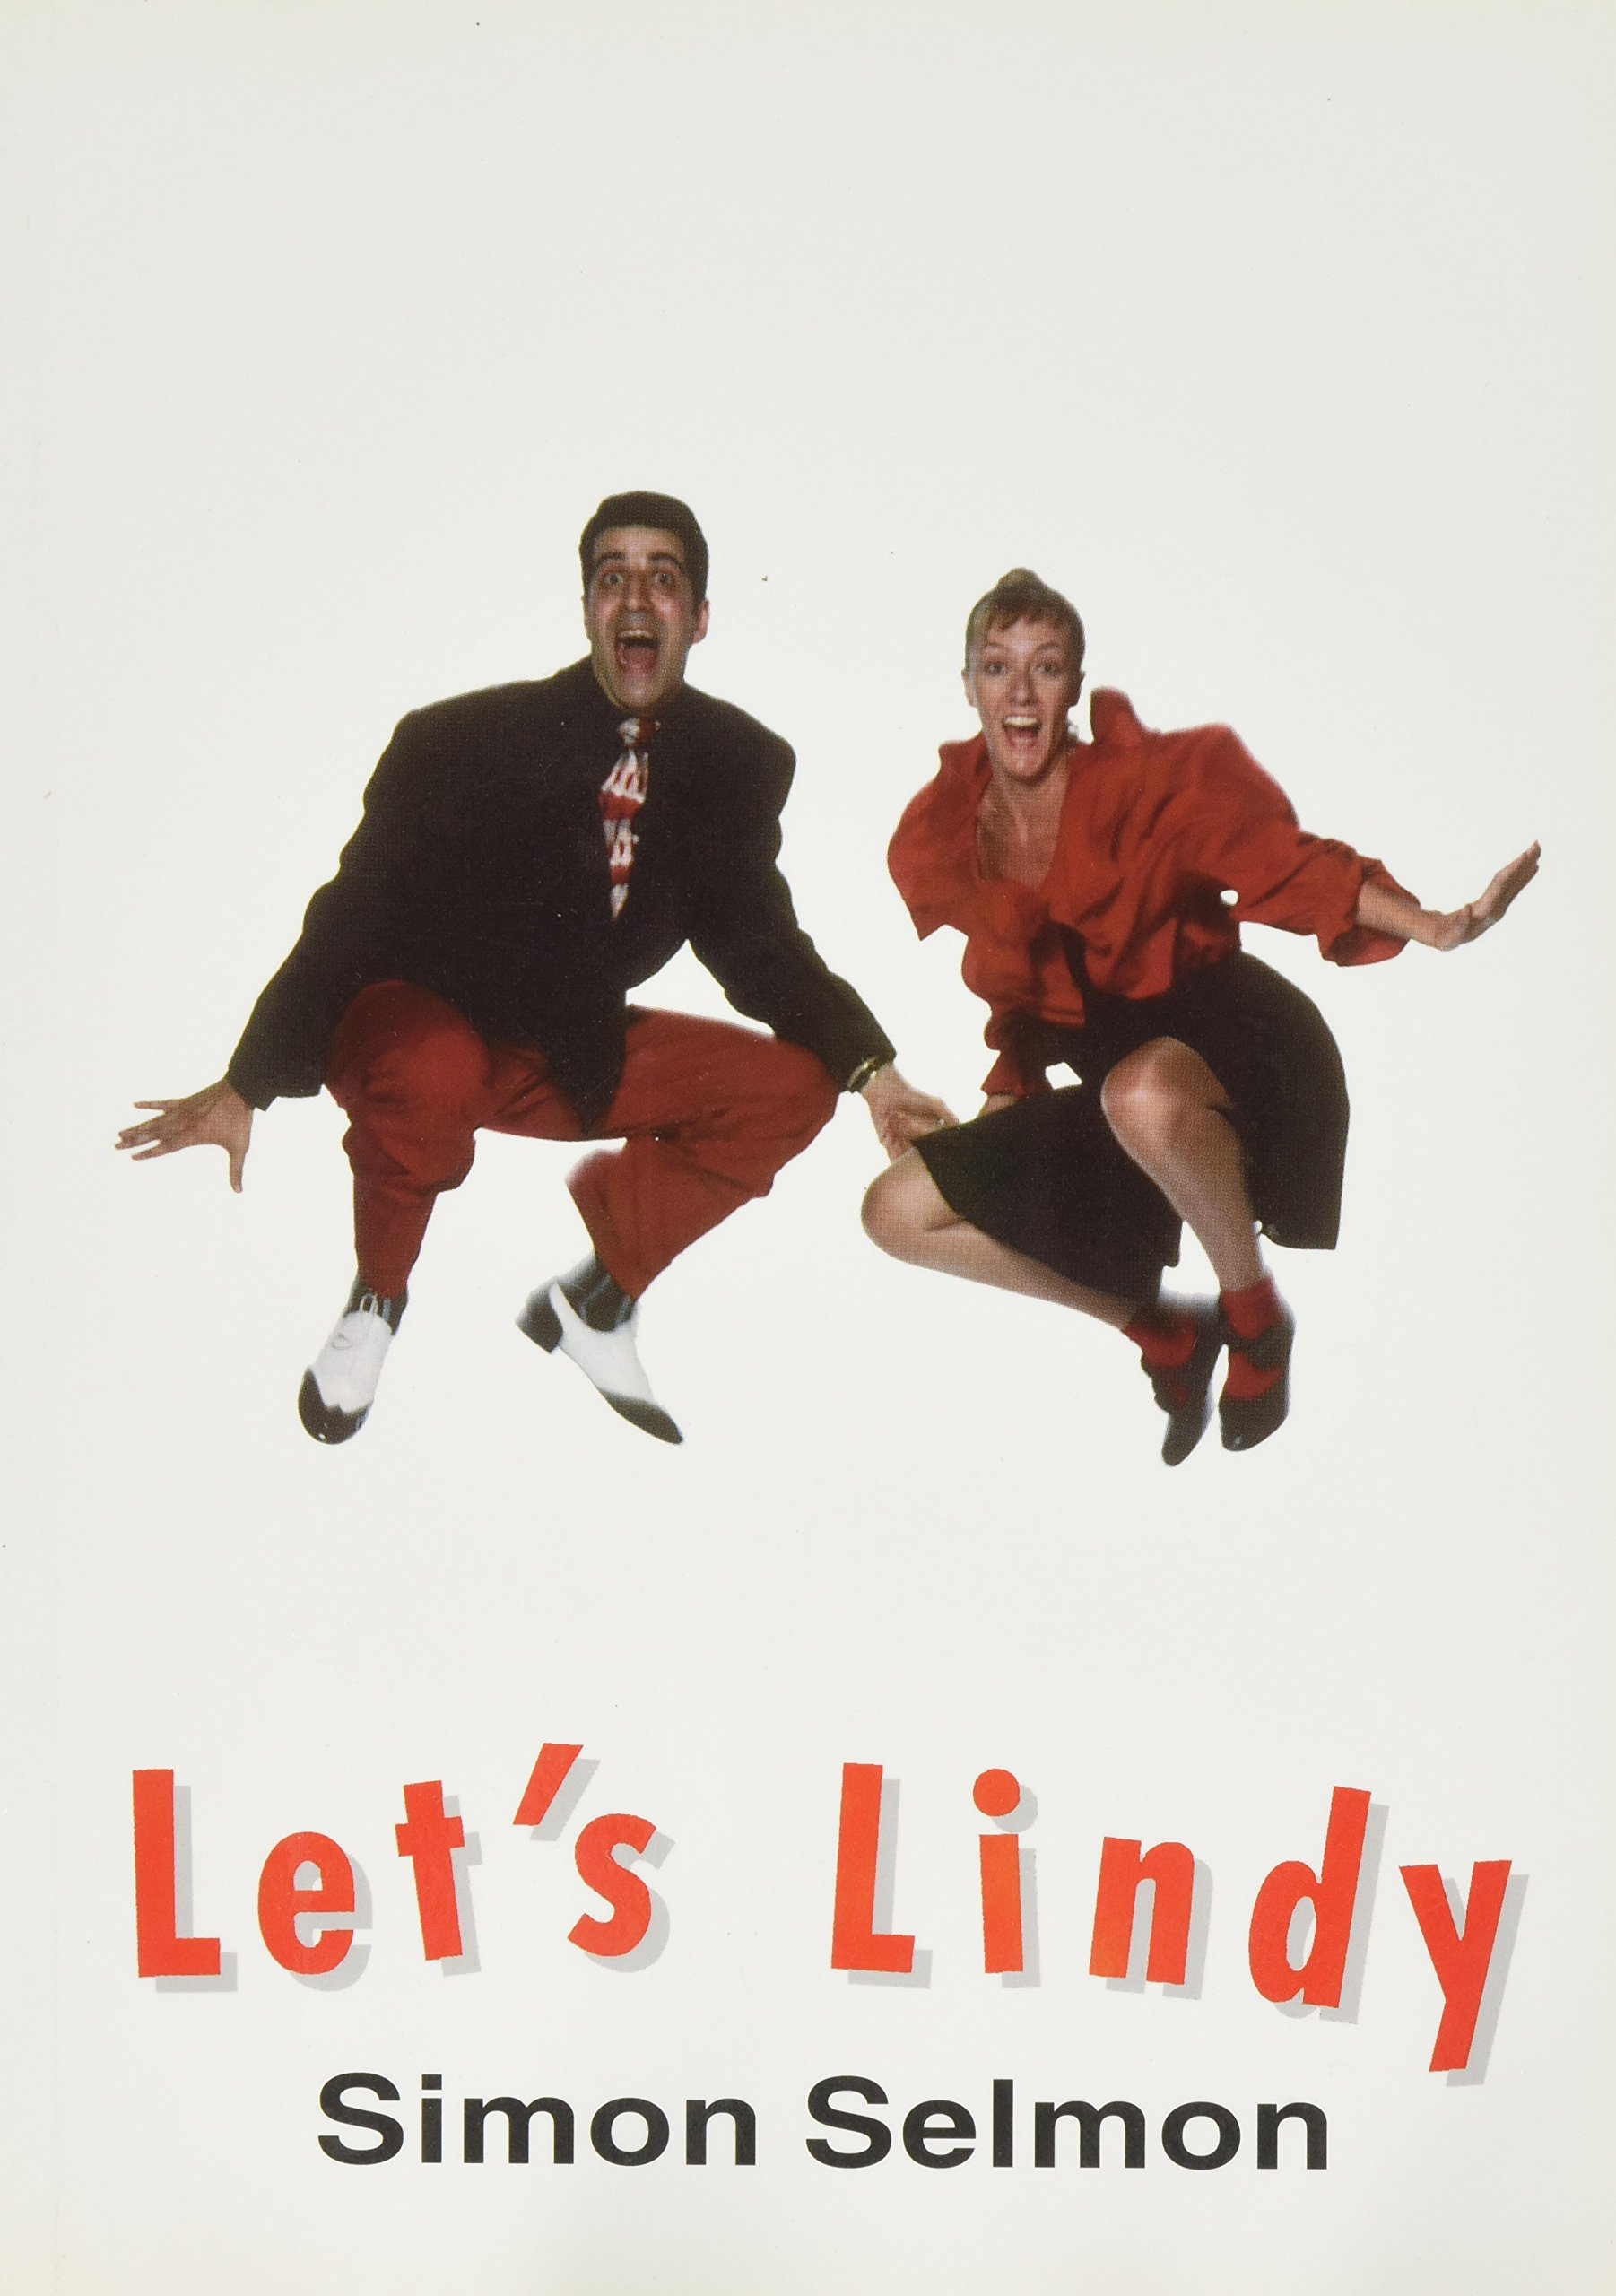 Let's Lindy